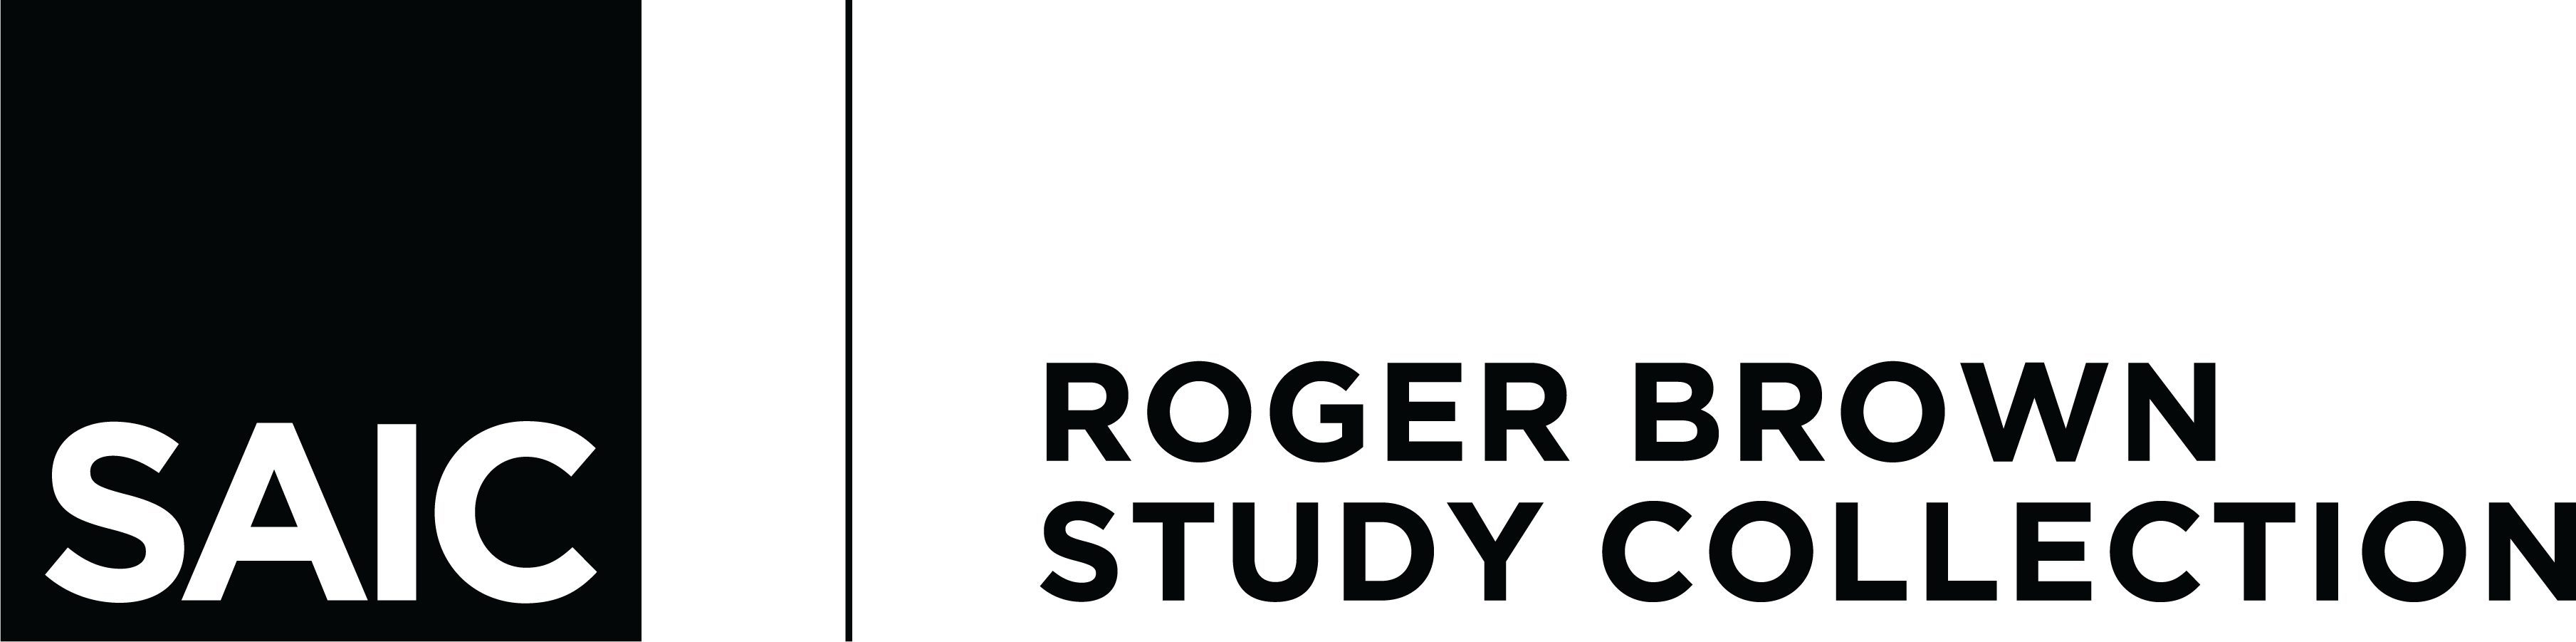 Roger Brown Study Collection logo